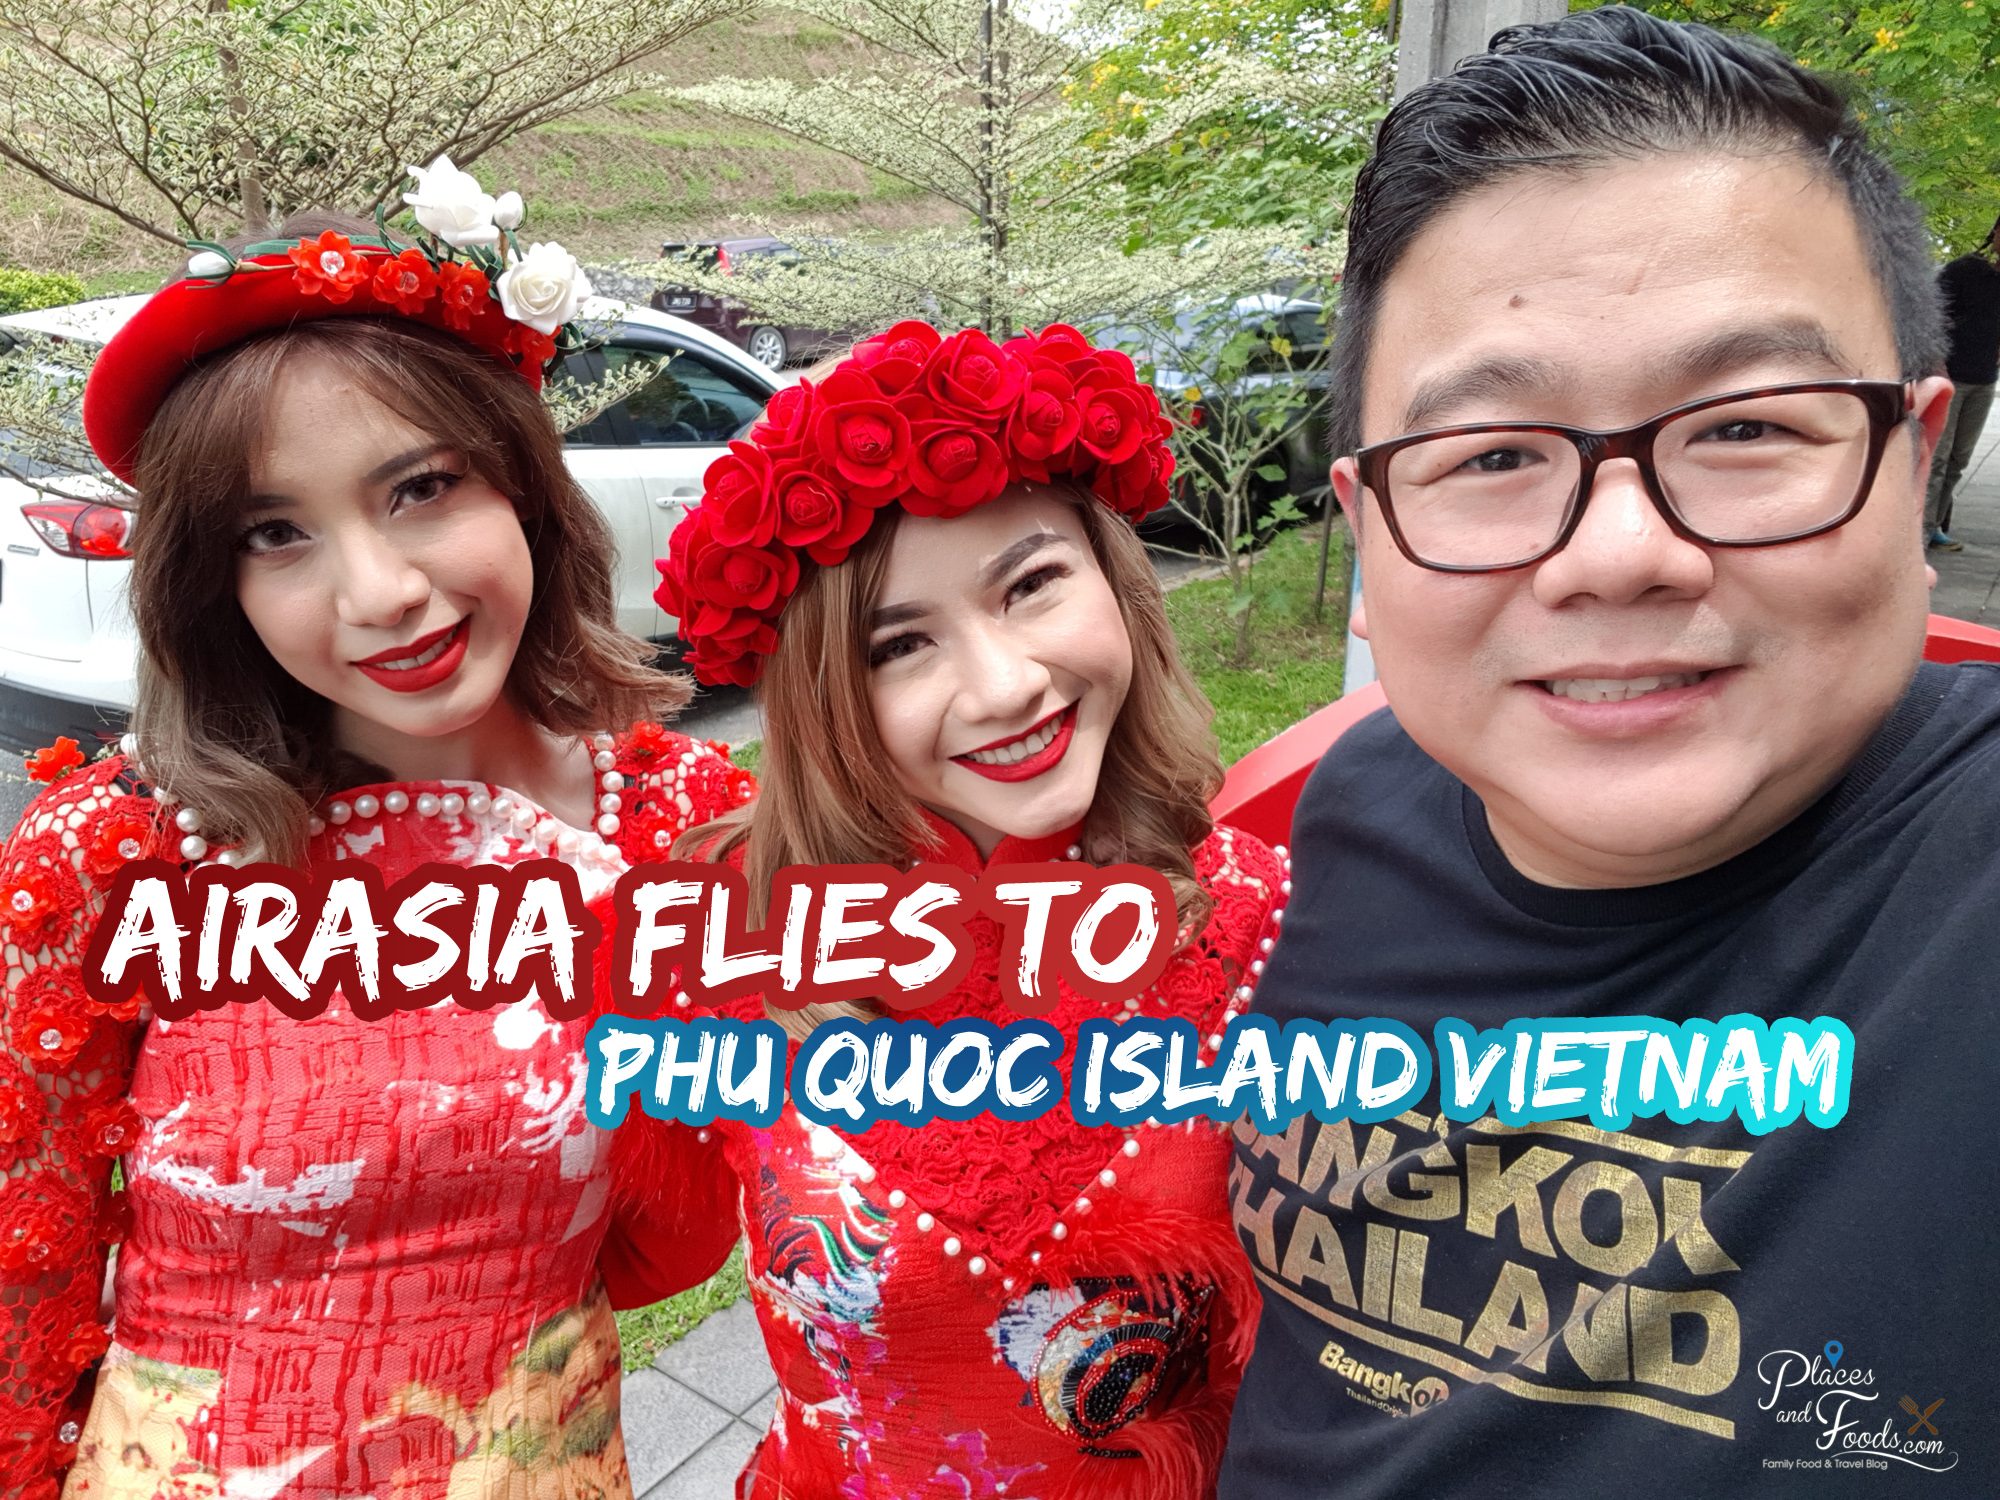 AirAsia launches new flights to Phu Quoc Island Vietnam